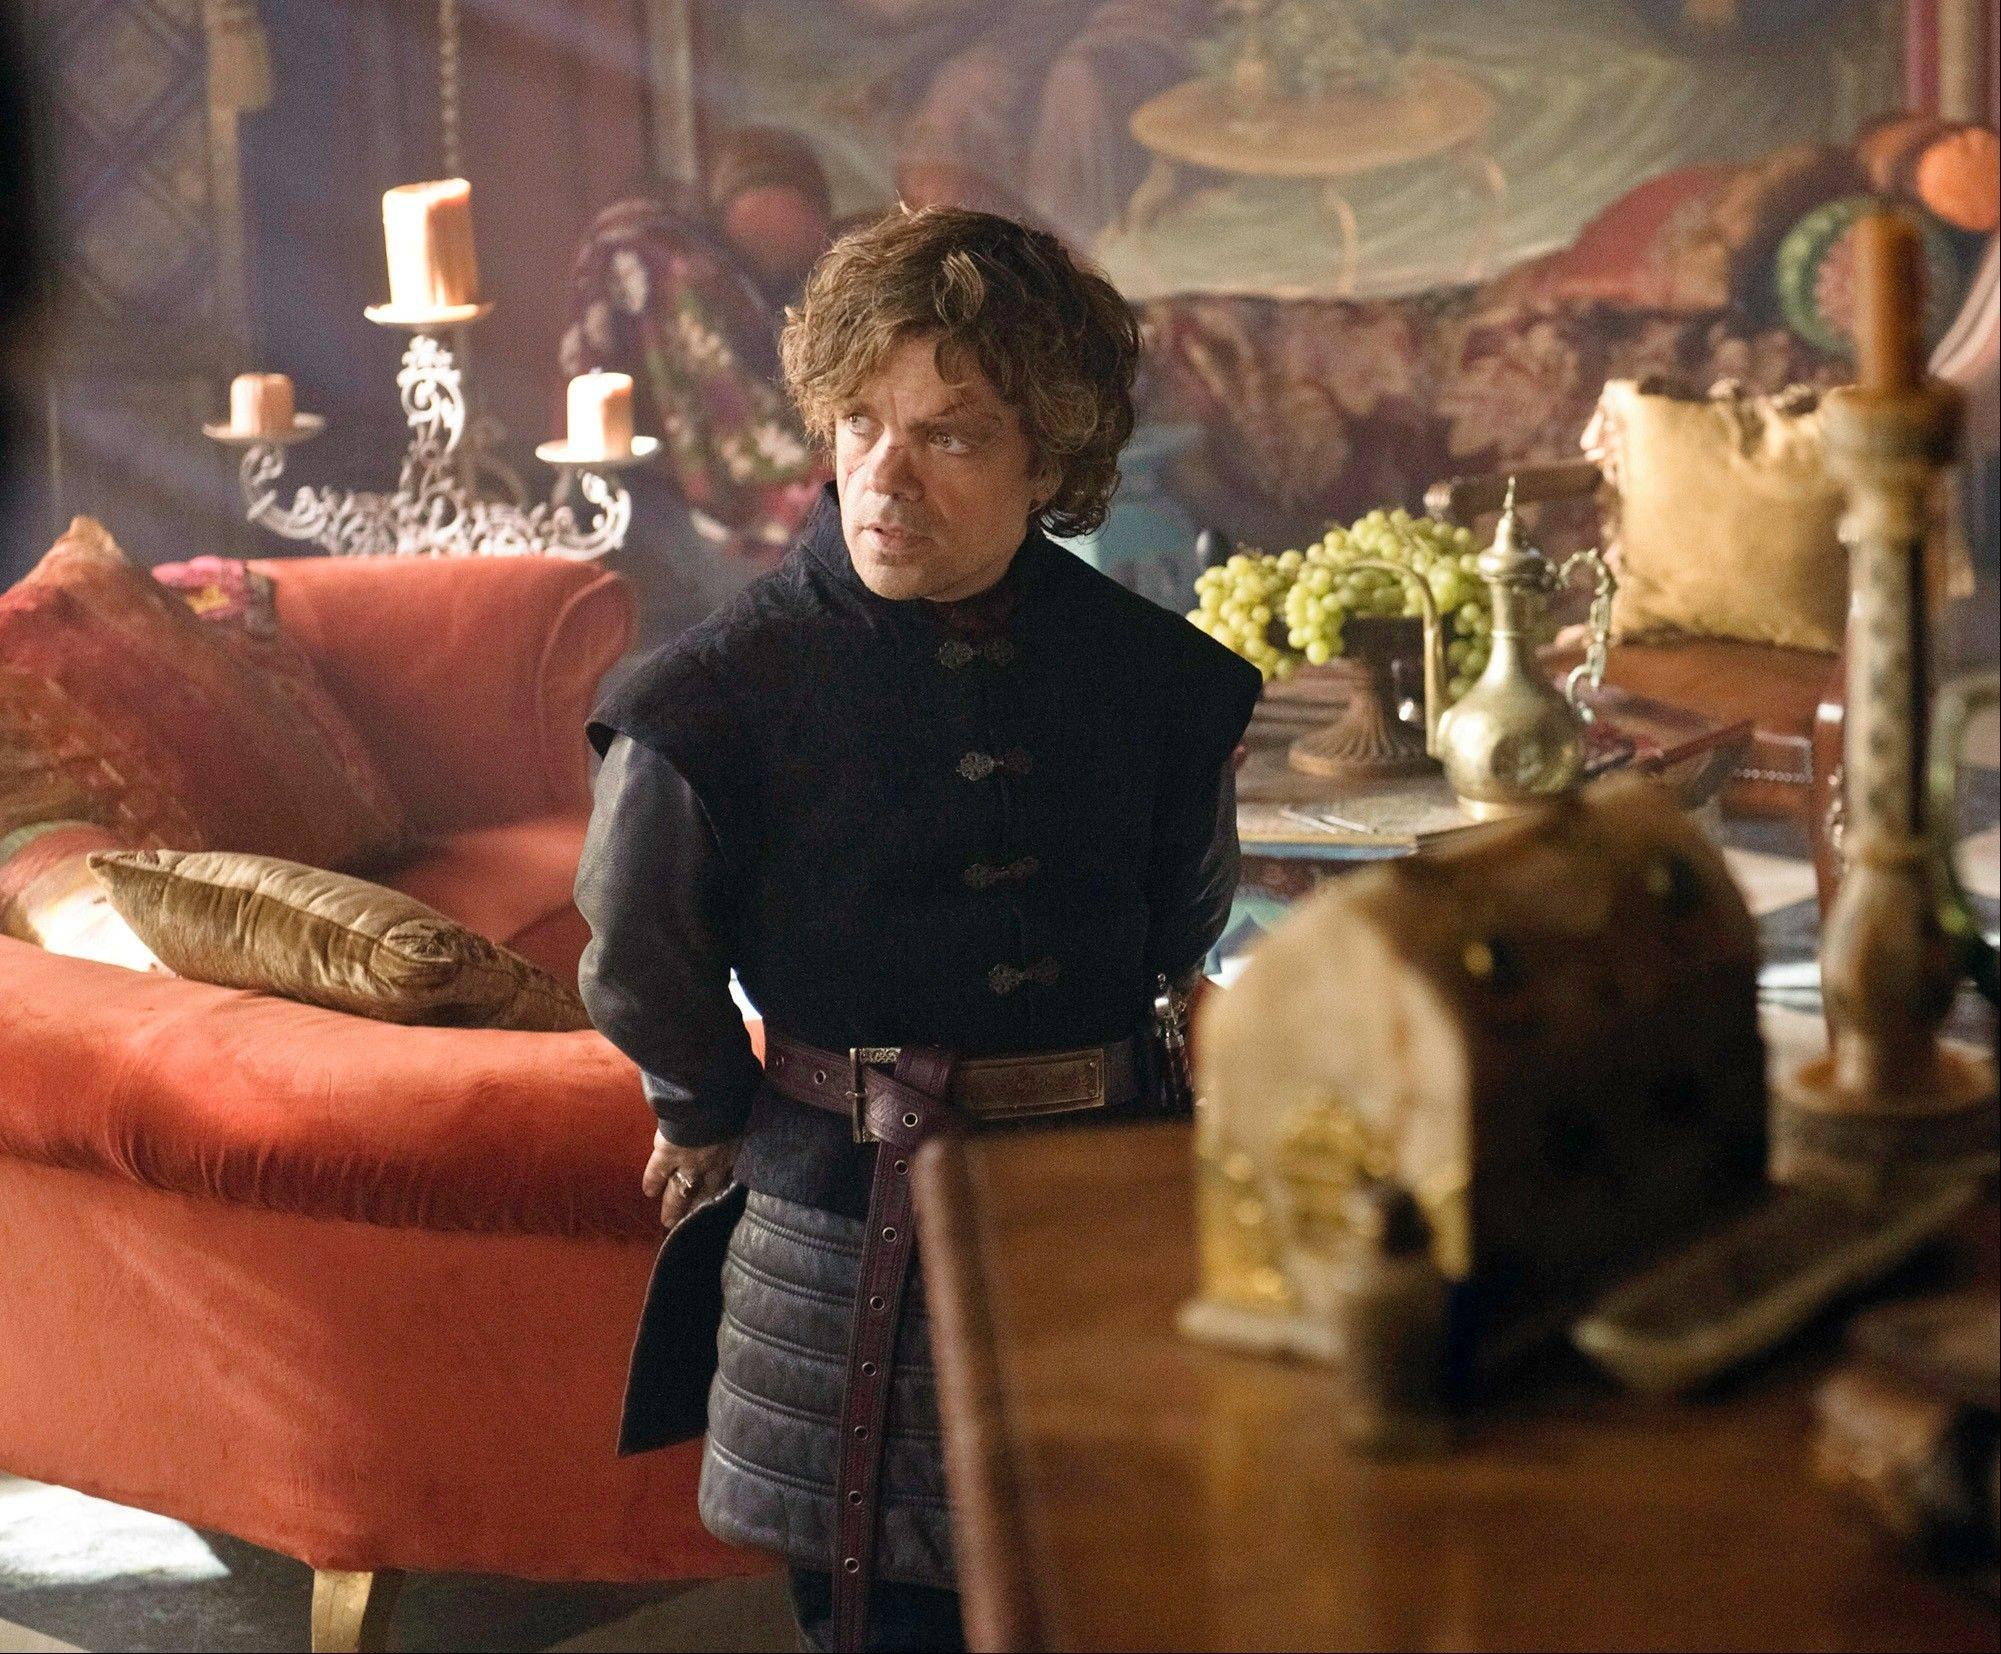 Peter Dinklage portrays Tyrion Lannister, who saved King�s Landing from invasion, but received only scorn from his vainglorious father in �Game of Thrones.�